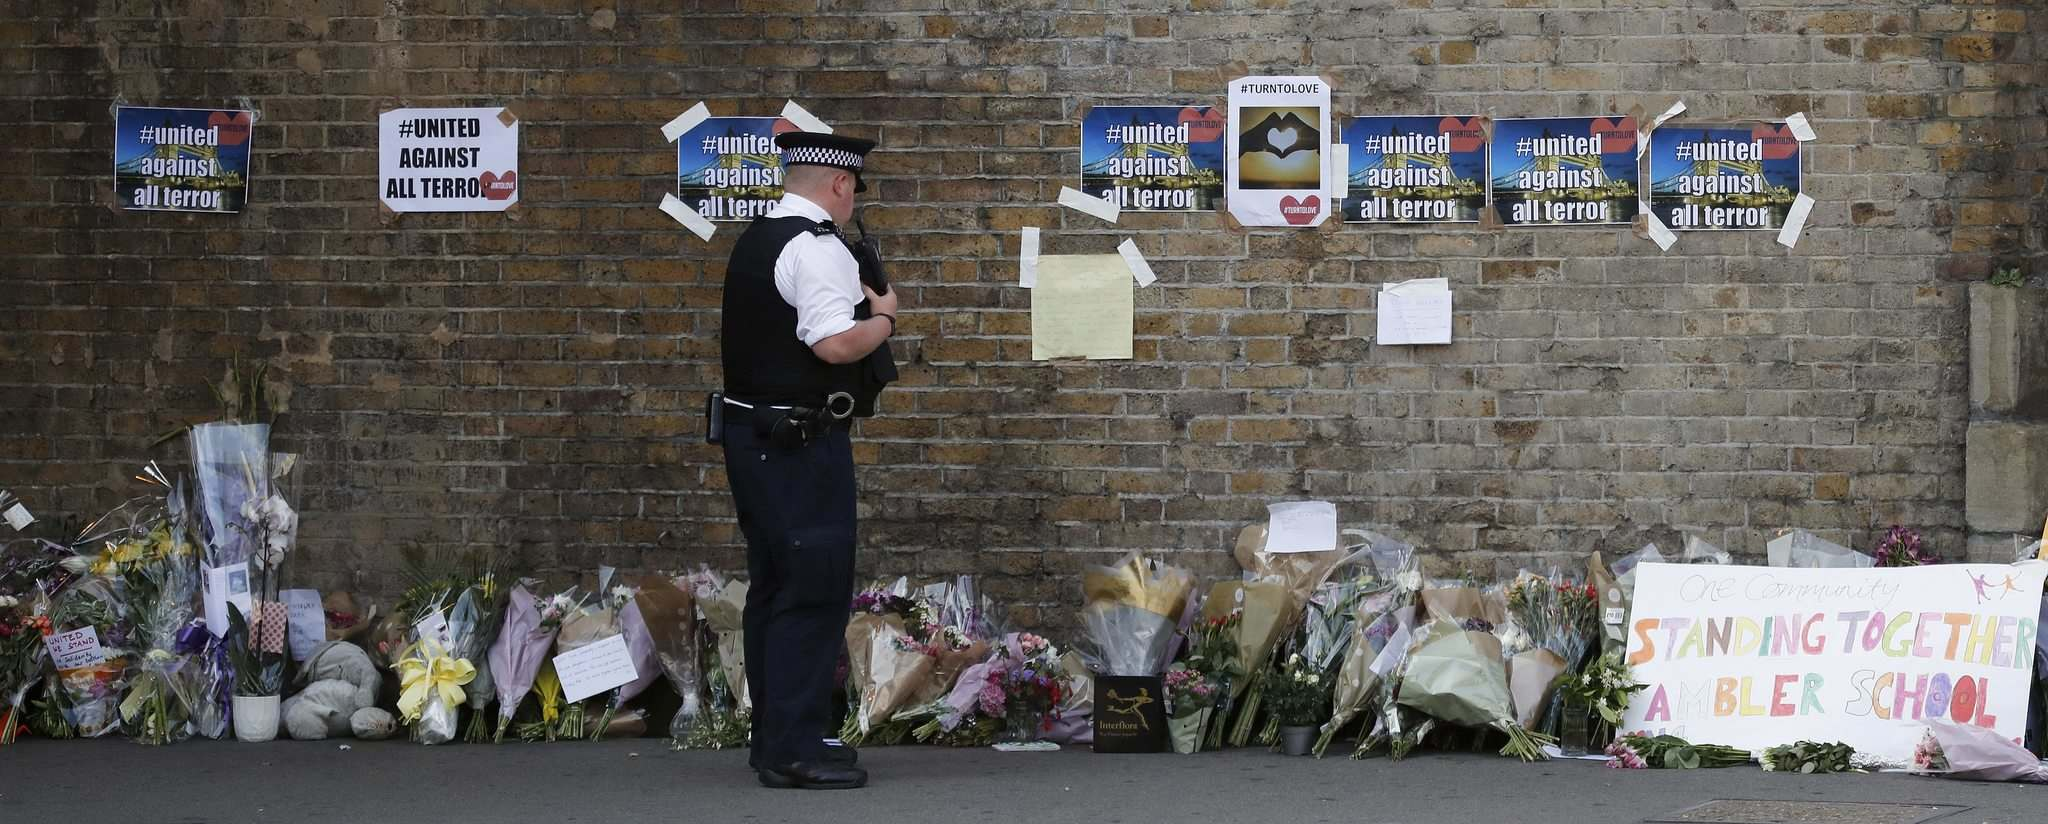 Frank Augstein / The Associated Press</p><p>A police officer stands near floral tributes in Finsbury Park in north London where a man behind the wheel of a van drove into worshippers near the Muslim Welfare House mosque on Monday, sending nine to hospital.</p>